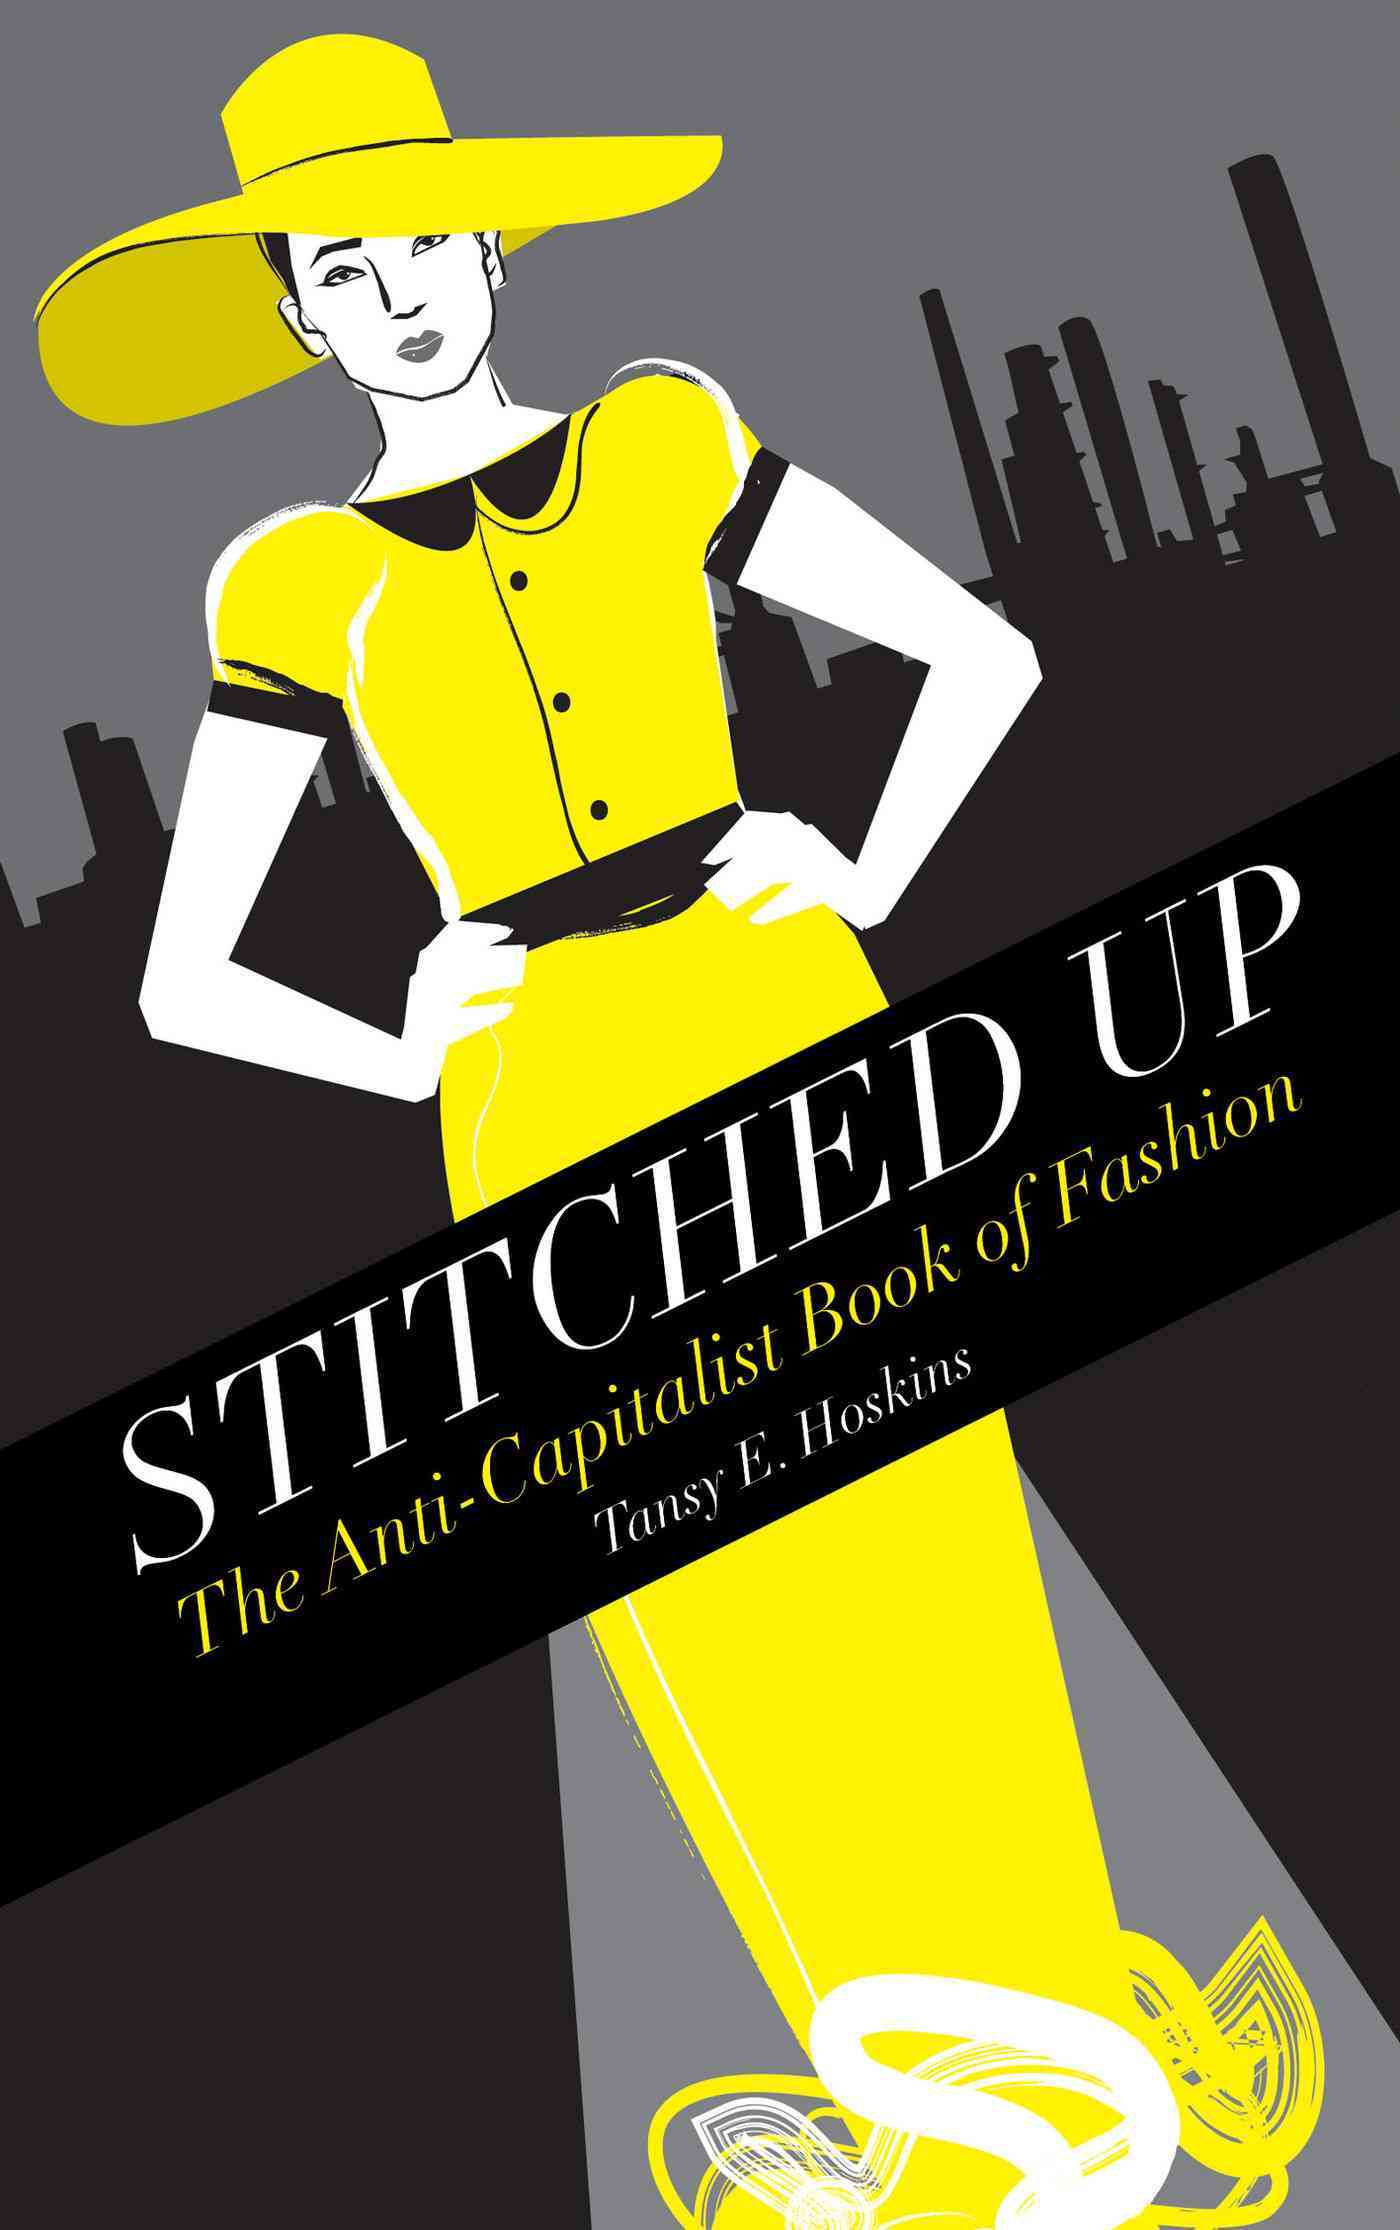 Stitched Up By Hoskins, Tansy E.